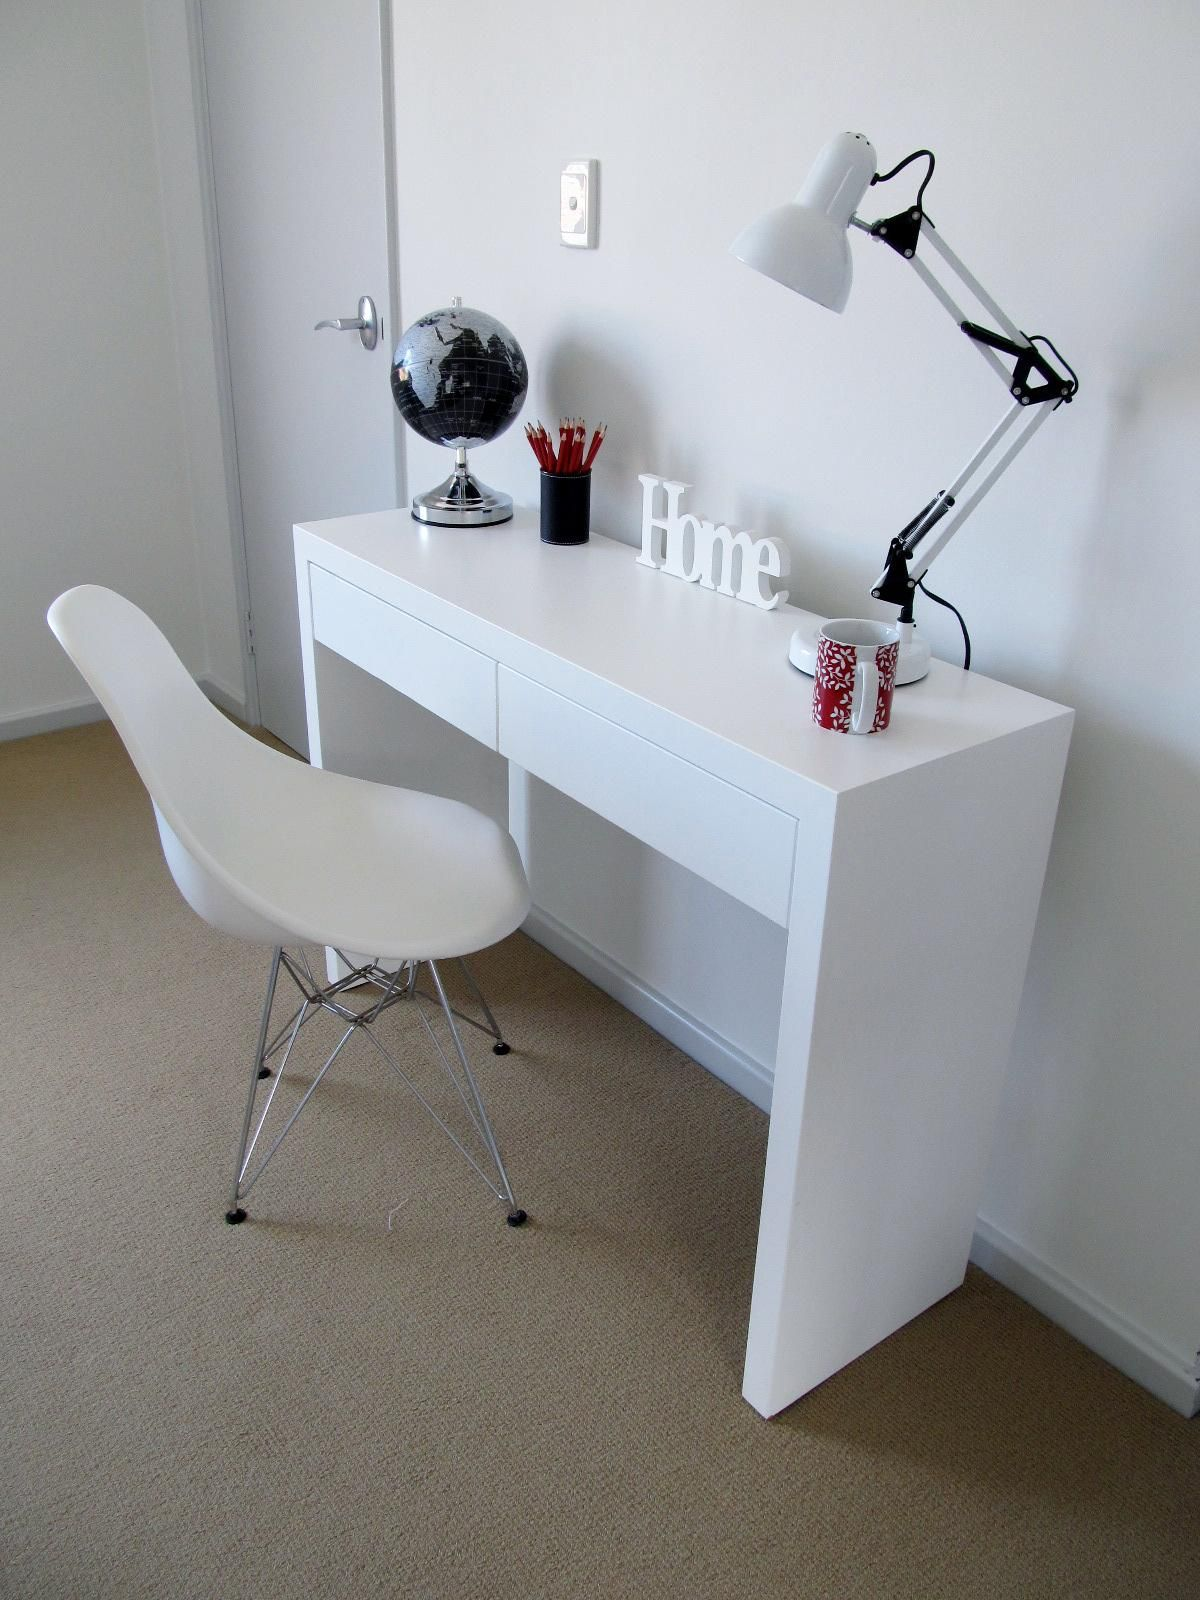 study table with chair on bedroom study table and chair white desk chair small desk chairs small bedroom desk white desk chair small desk chairs